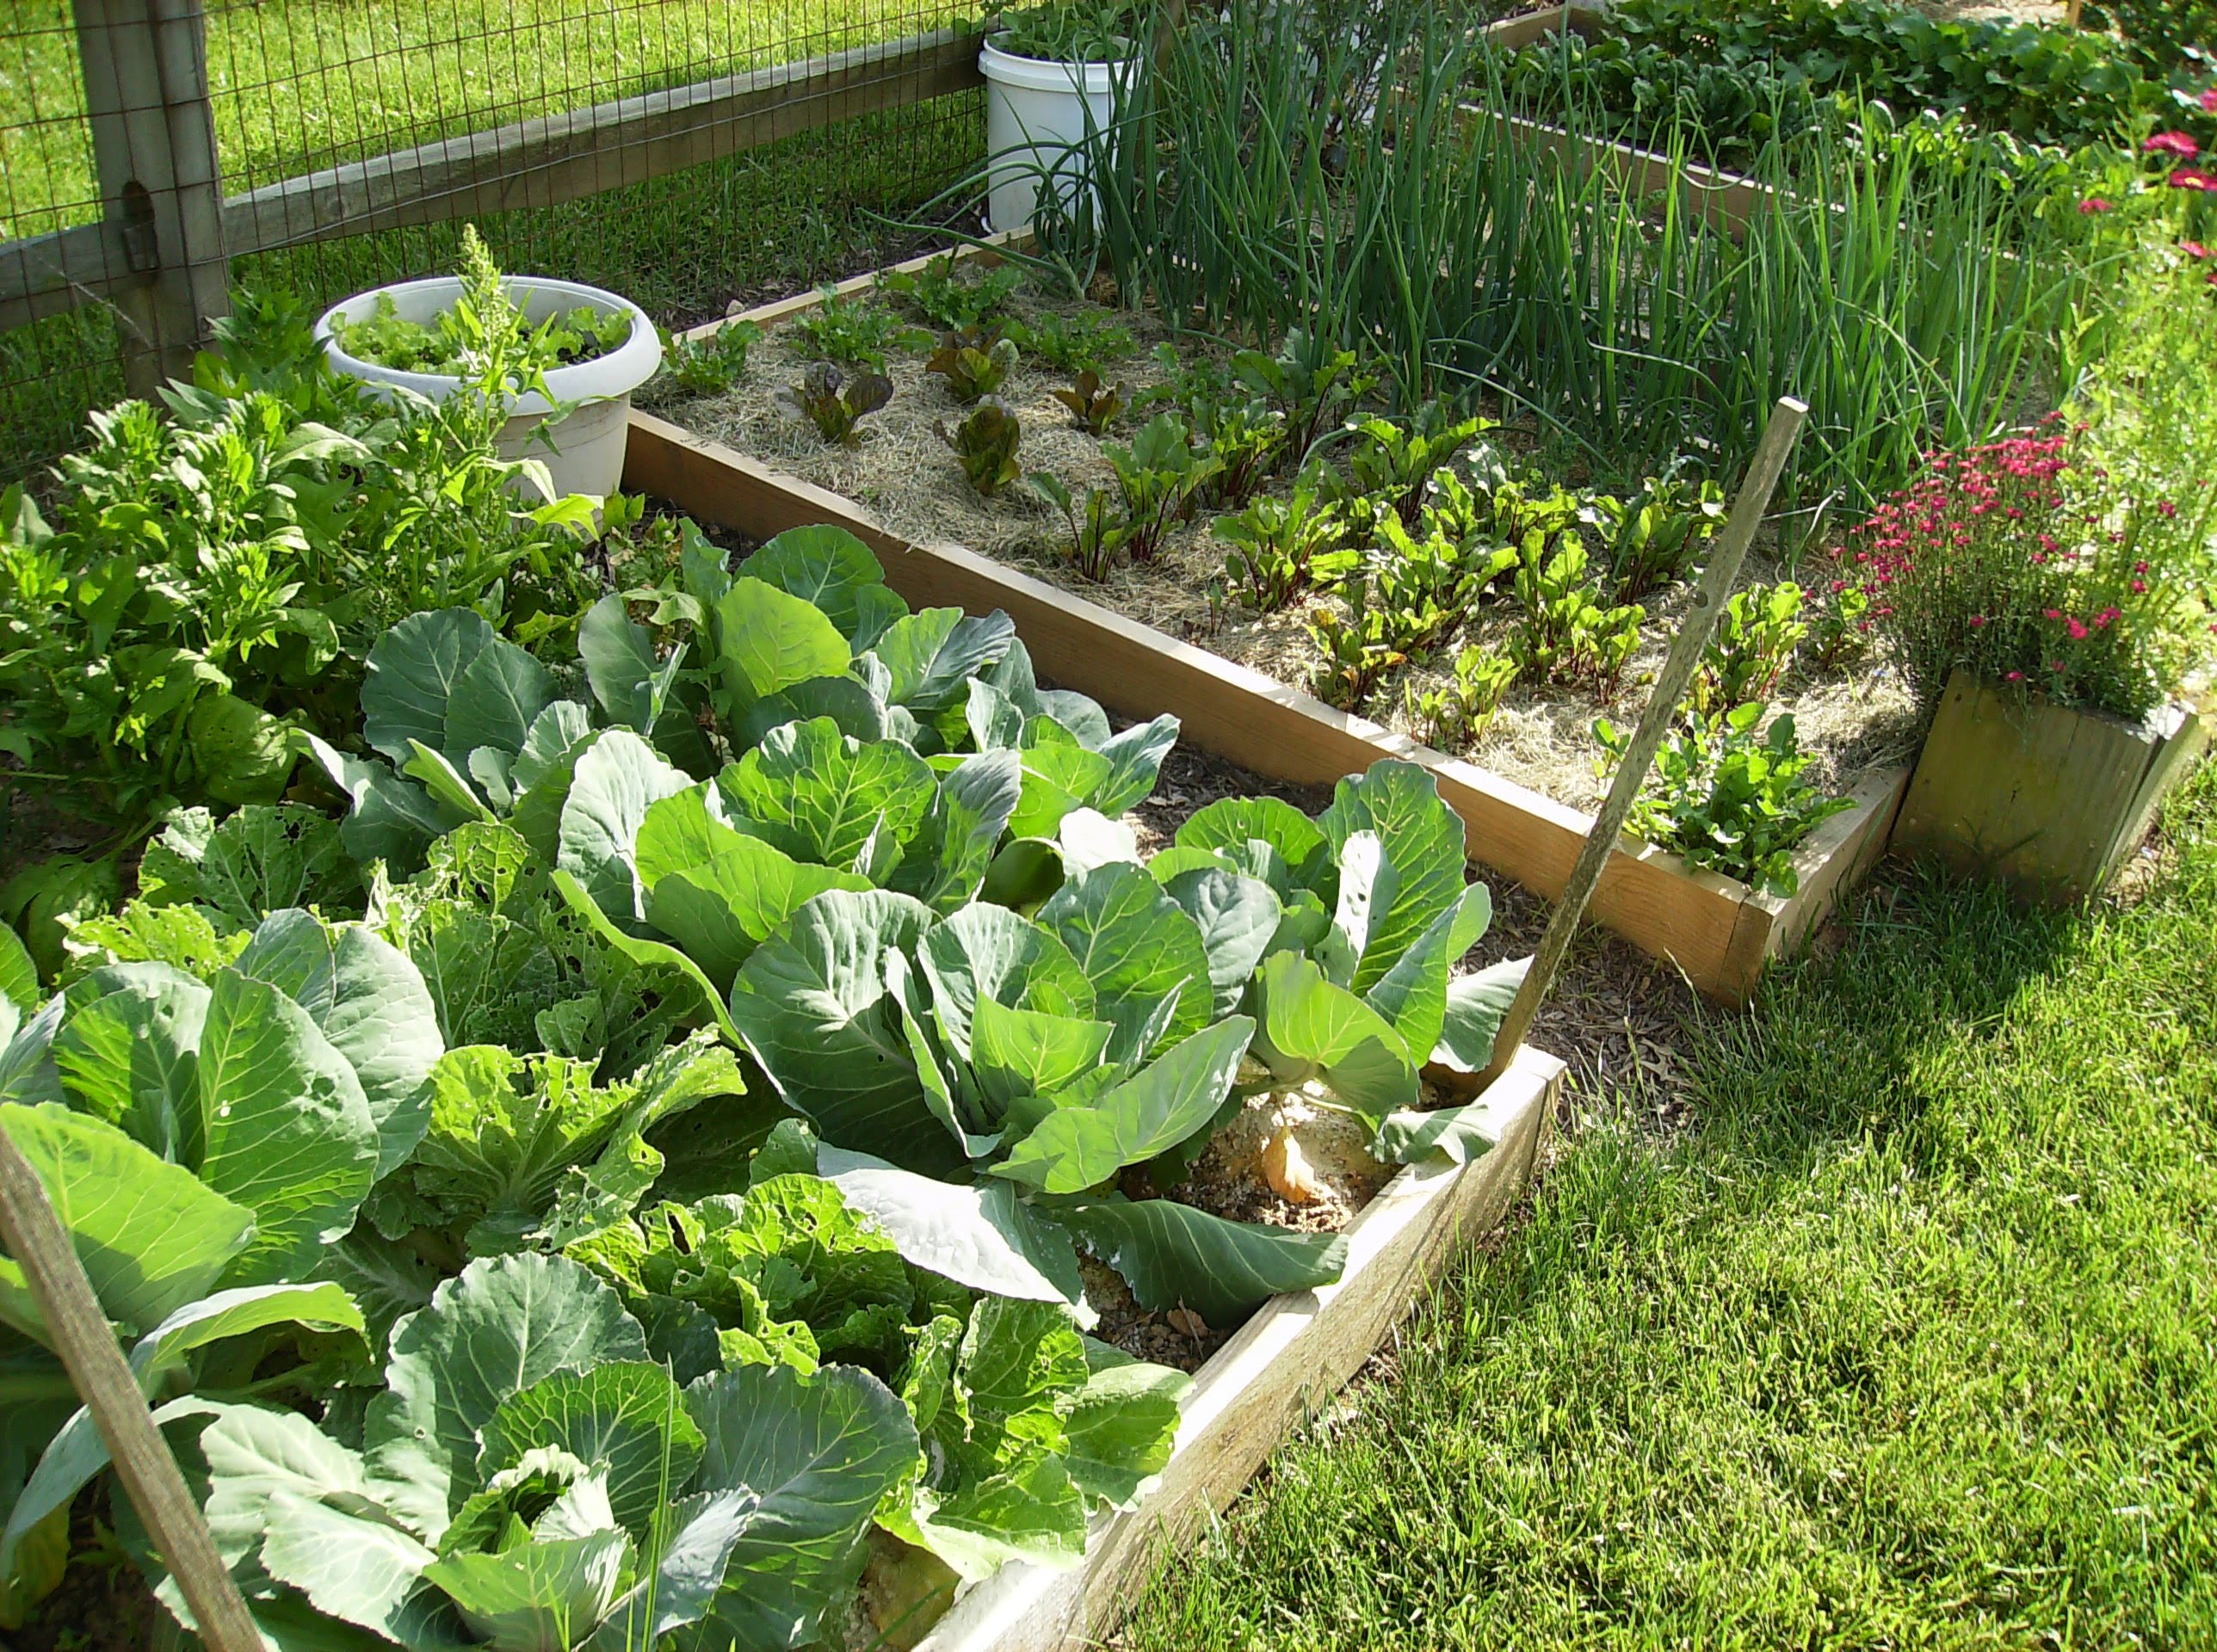 Watering Vegetable Gardening In A Raised Bed